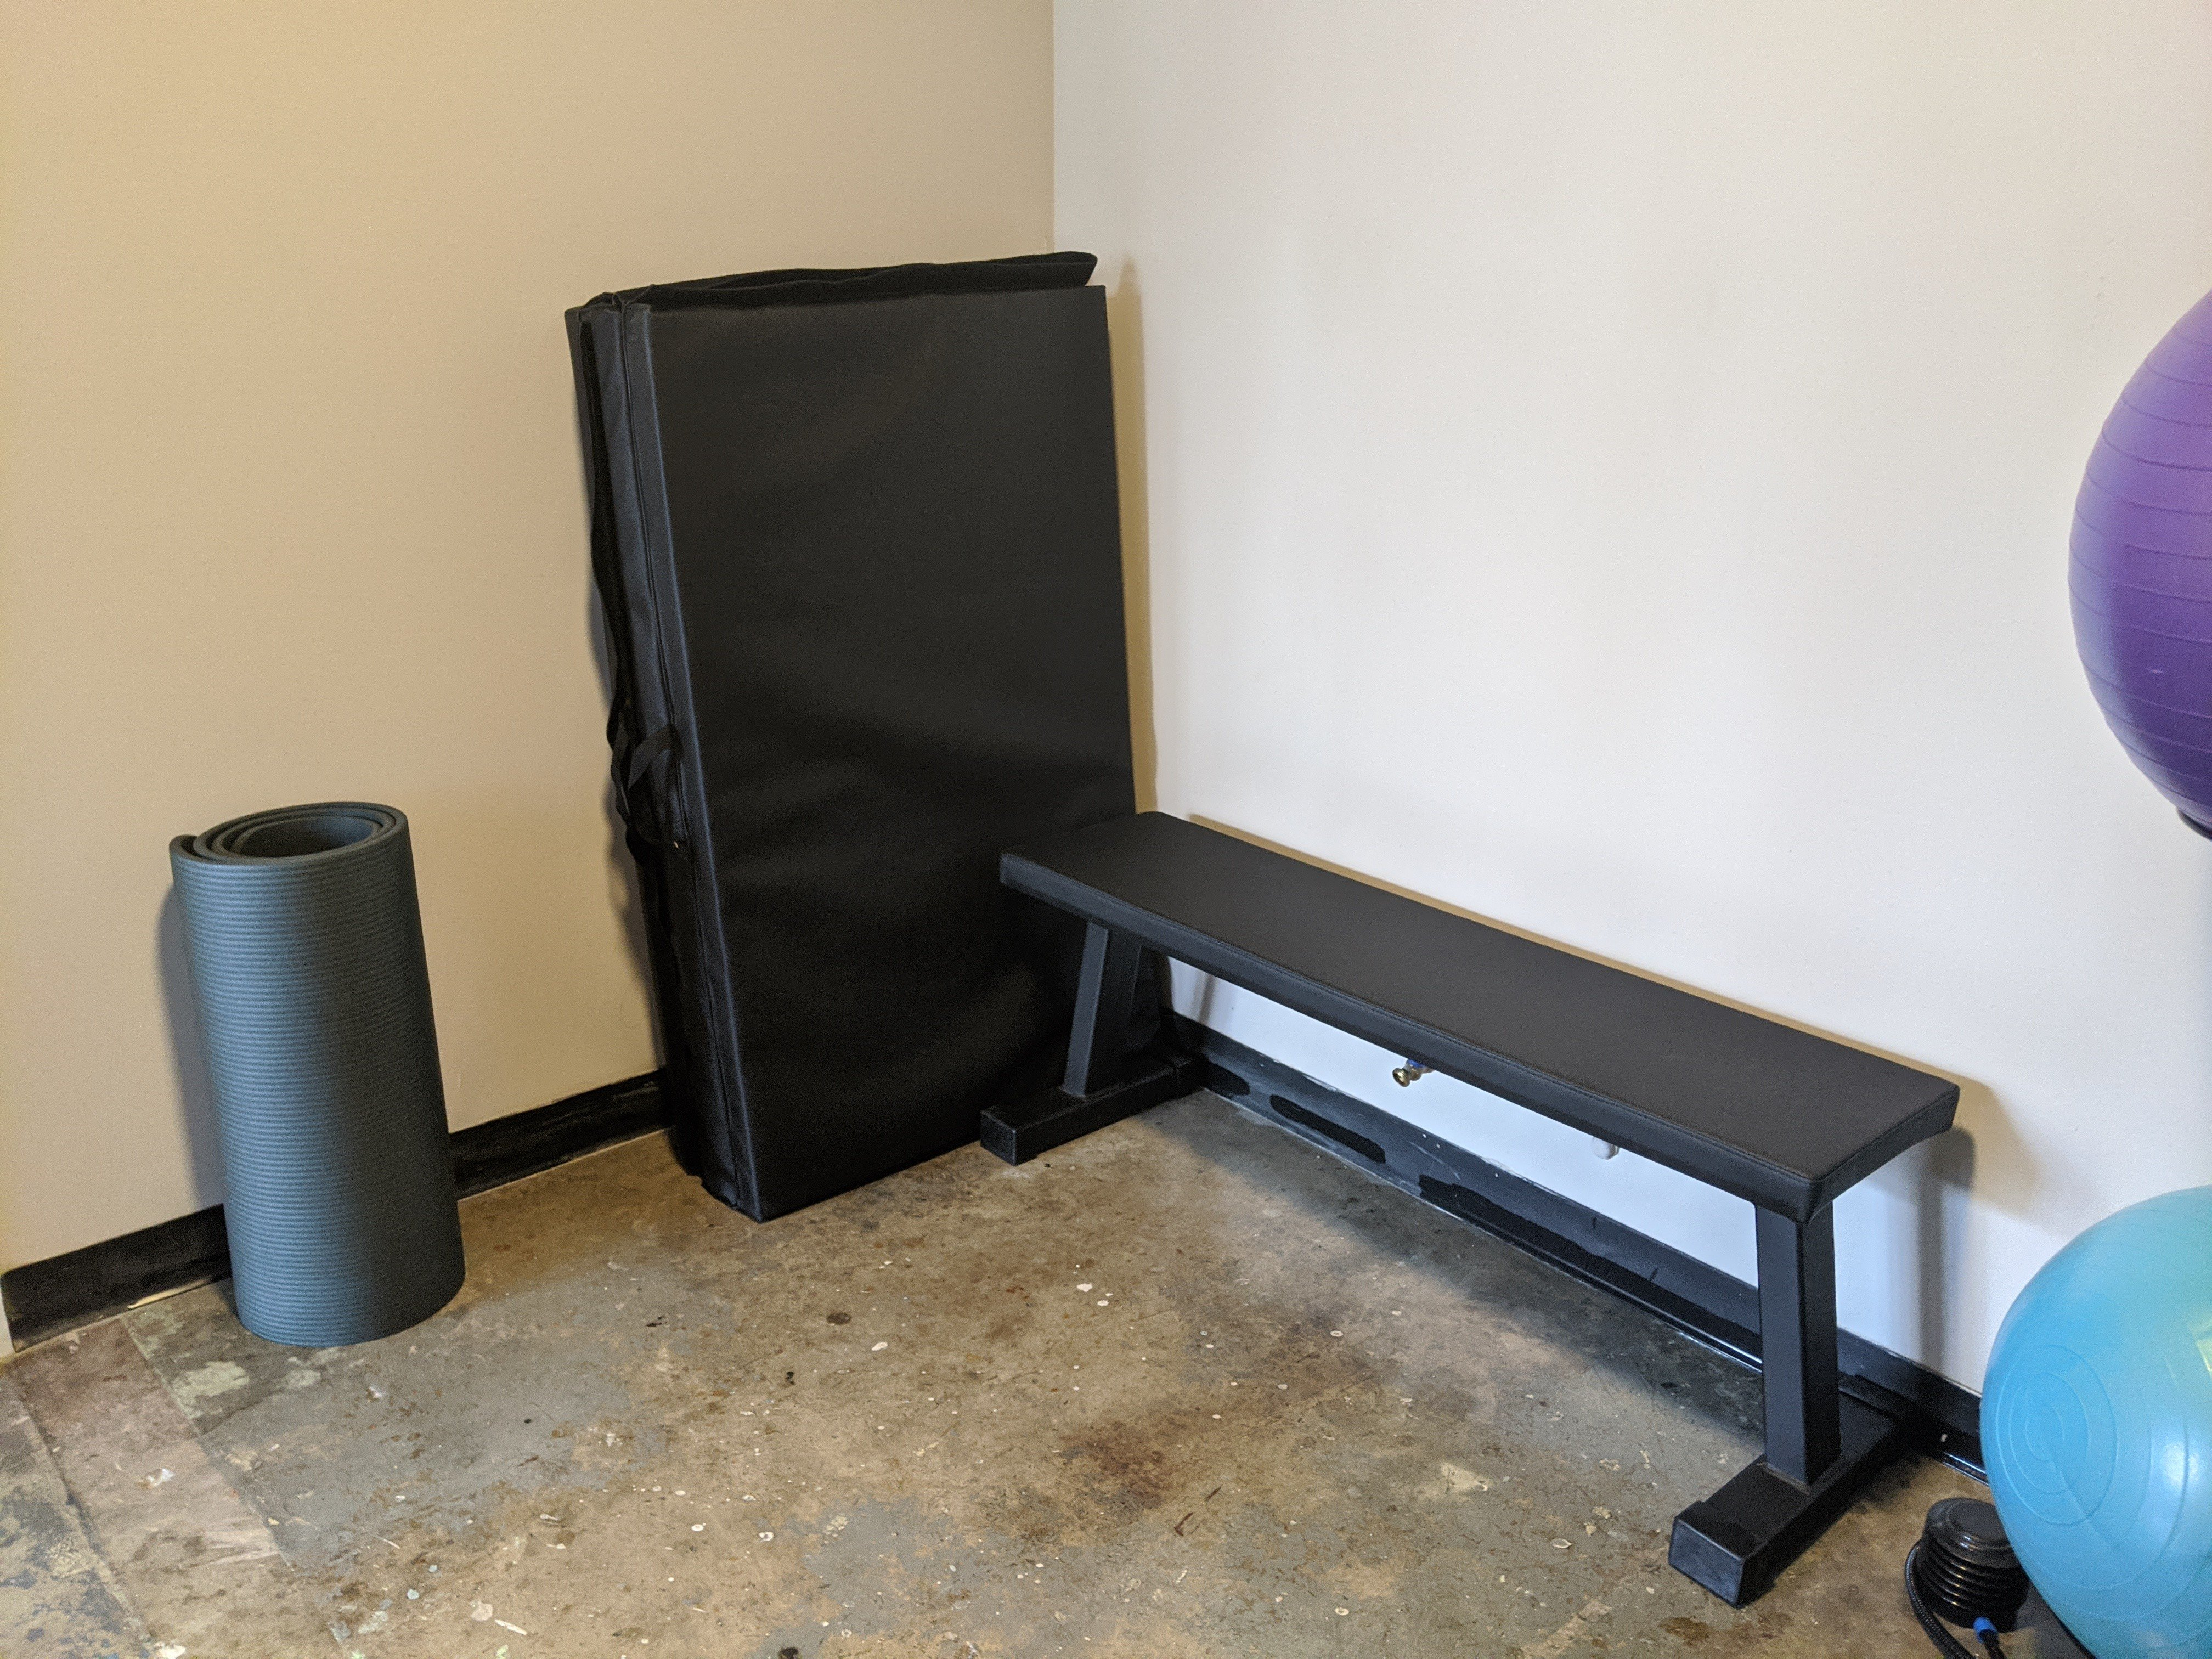 Utility bench and mats